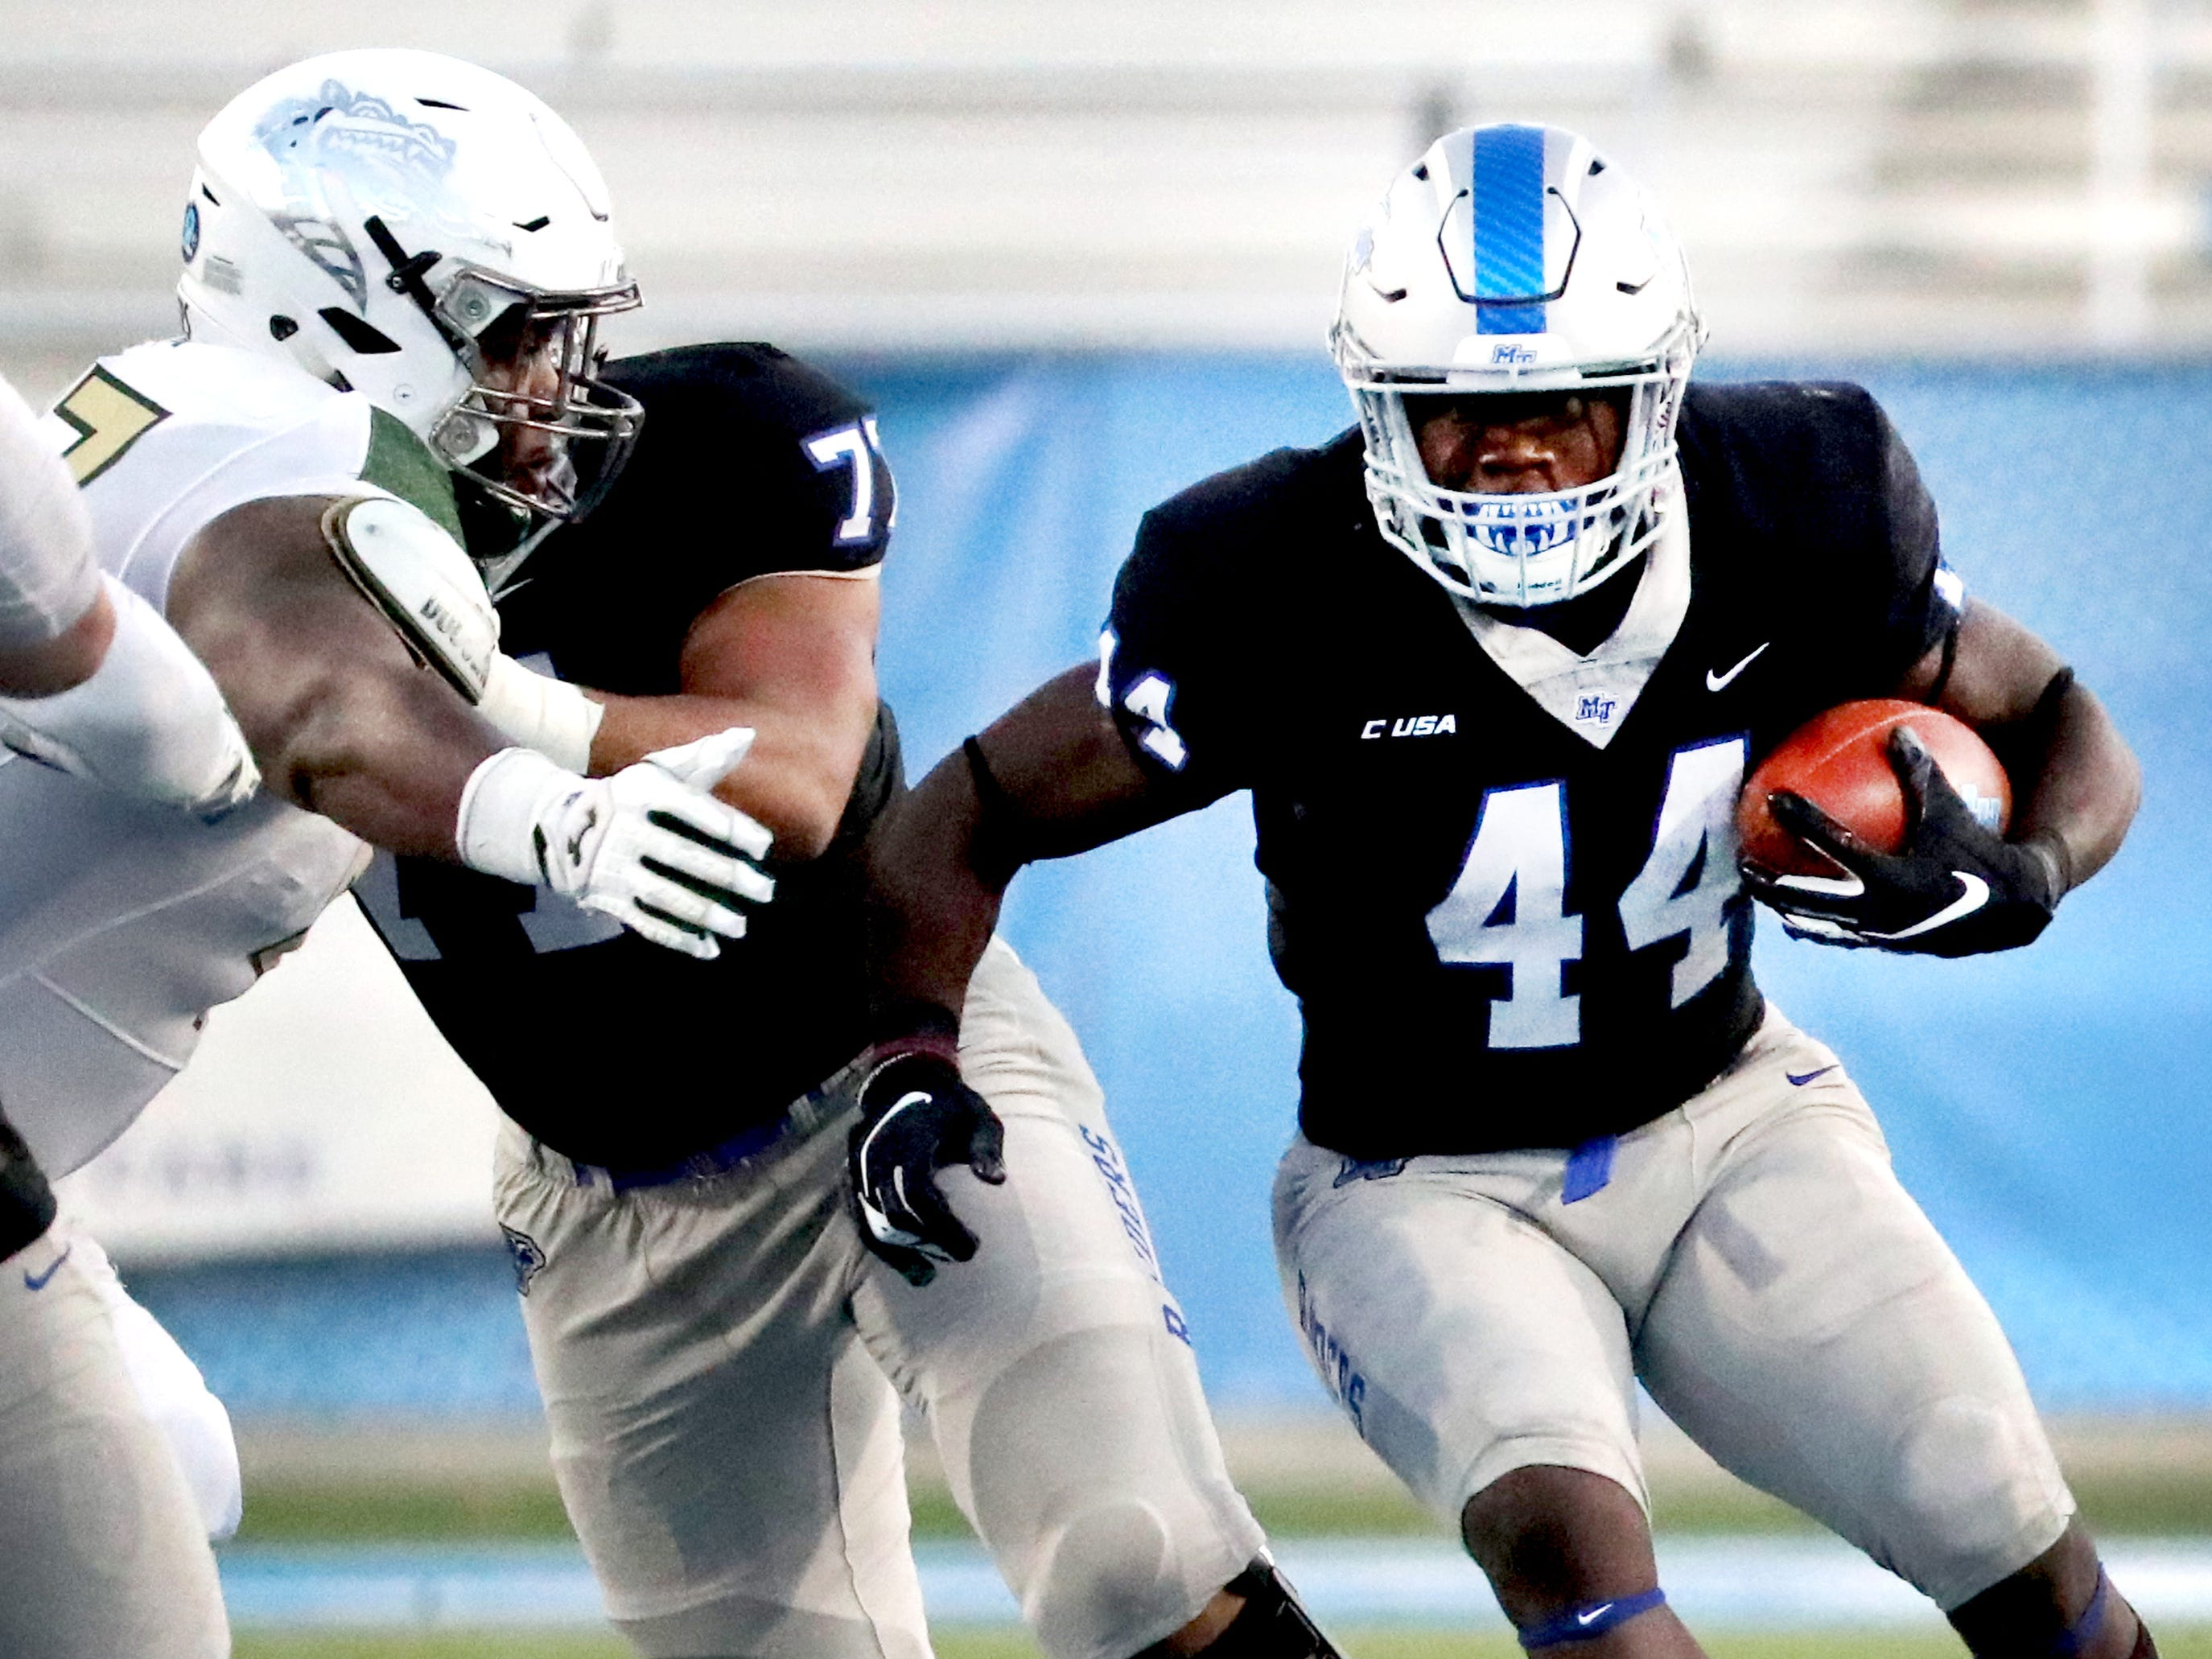 MTSU's Chaton Mobley (44) runs the ball during the game against UAB at MTSU on Saturday, Nov. 24, 2018.